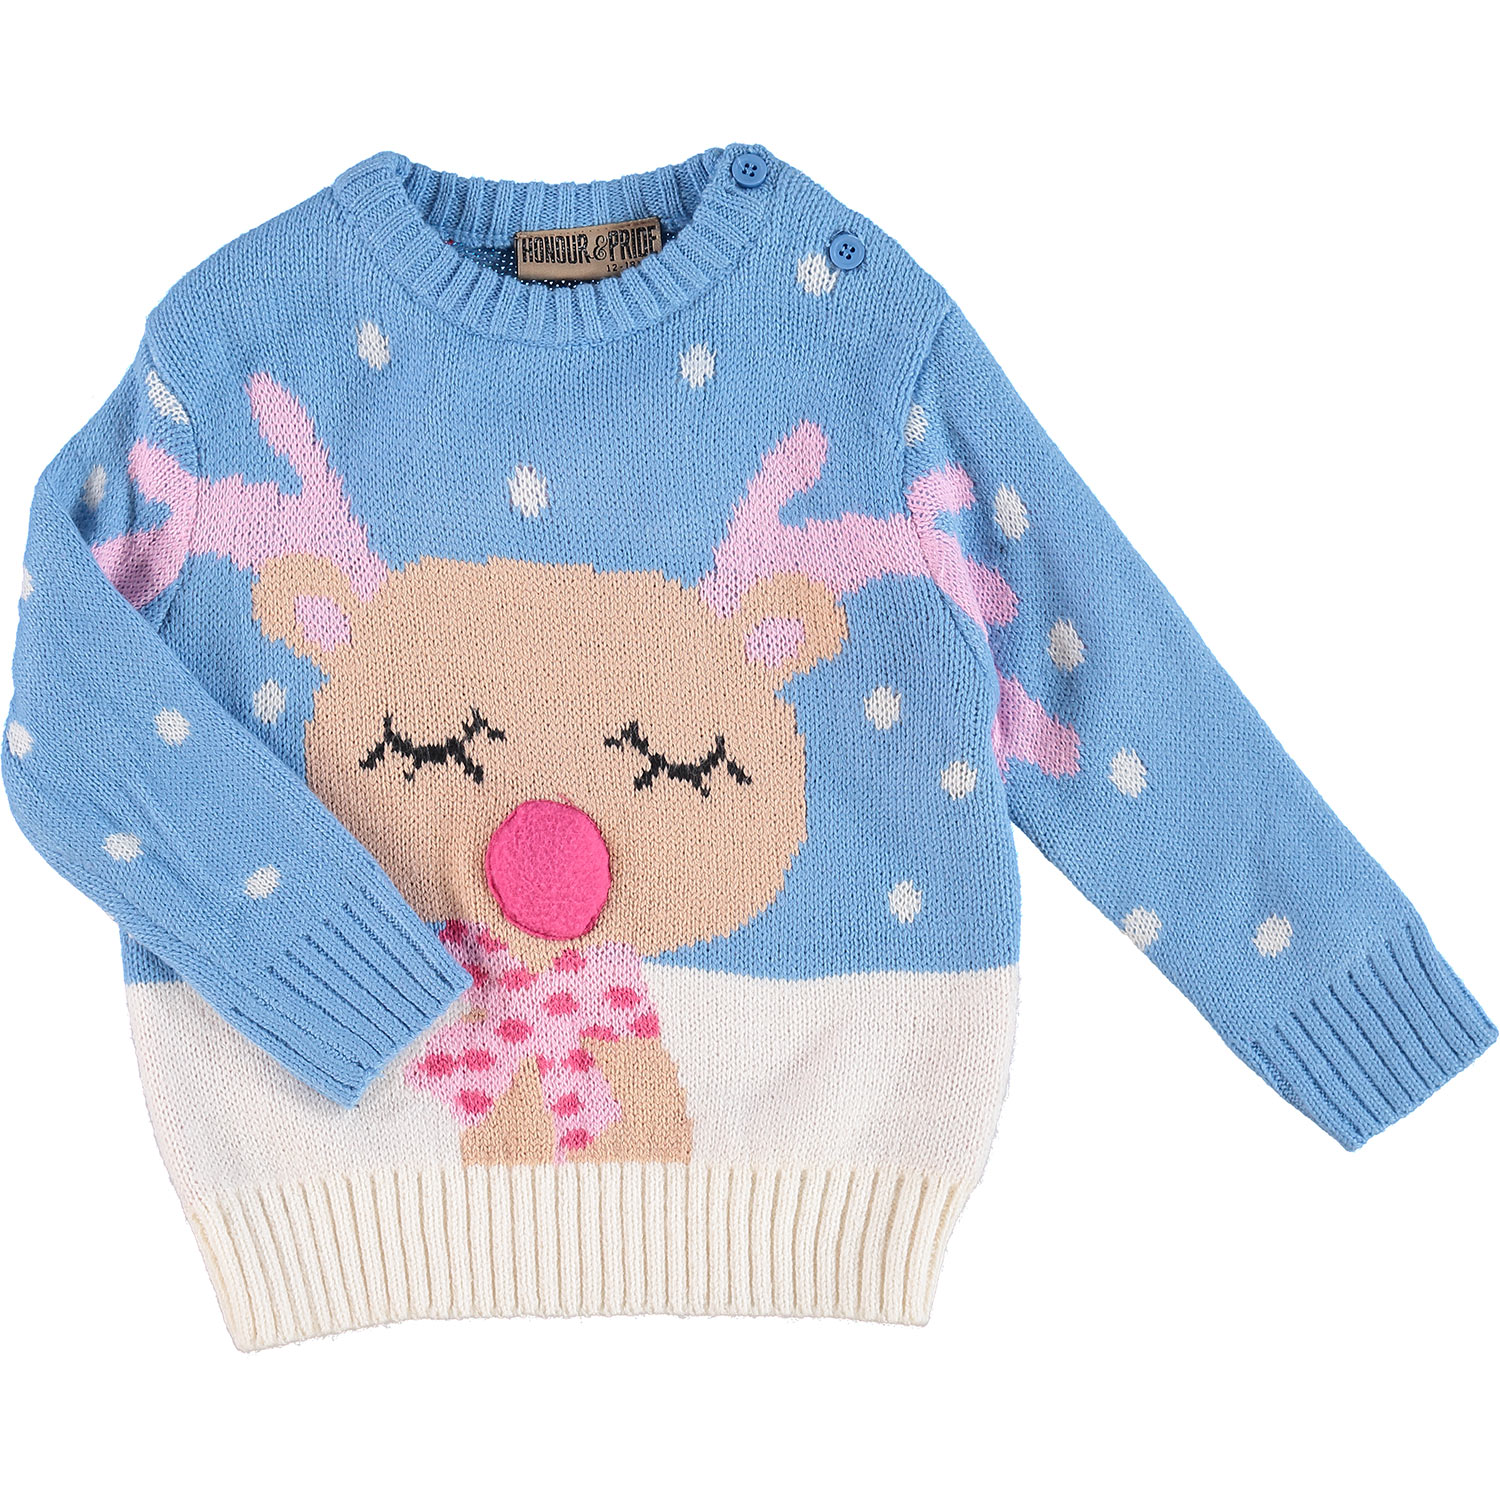 Reindeer Fair Isle Jumper, Boys Jumpers and Sweatshirts, Boys Clothes, Girls and Find this Pin and more on Christmas | Kids' Christmas Jumpers by TantrumXYZ. Christmas wouldn't be complete without a Christmas jumper, and this reindeer design fits the bill perfectly.